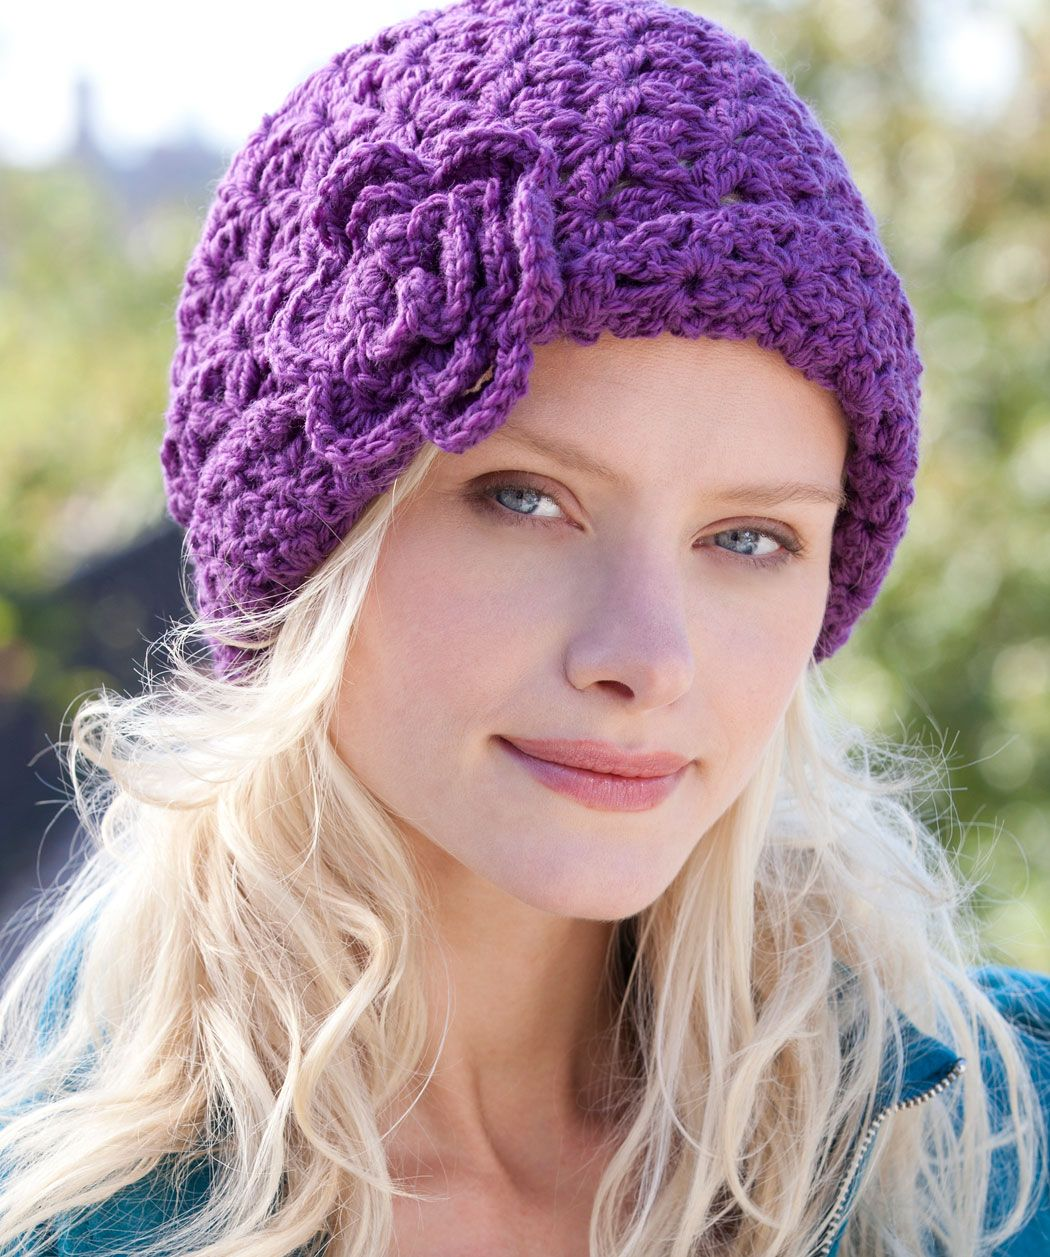 Top 10 diy crocheted hats free crochet hat patterns crochet and free crochet hat patterns easy crocheted hat patterns free bankloansurffo Images